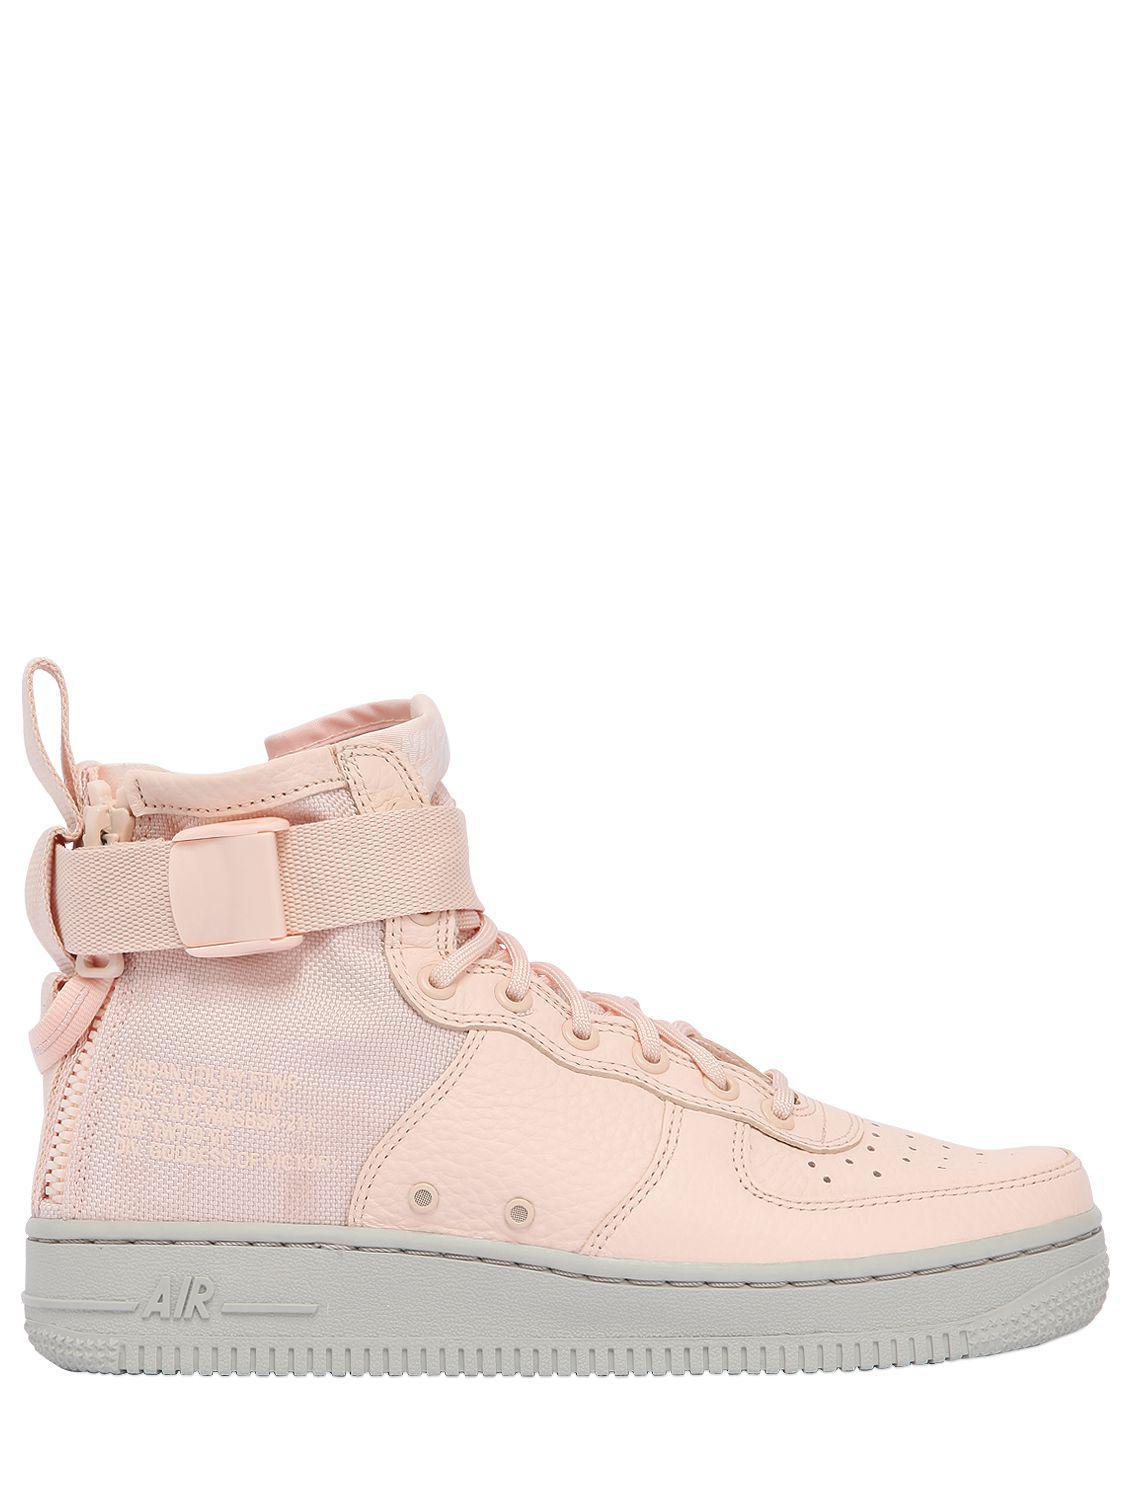 Nike Sf Air Force 1 Mid Top Sneakers in Pink - Save ... a346971da